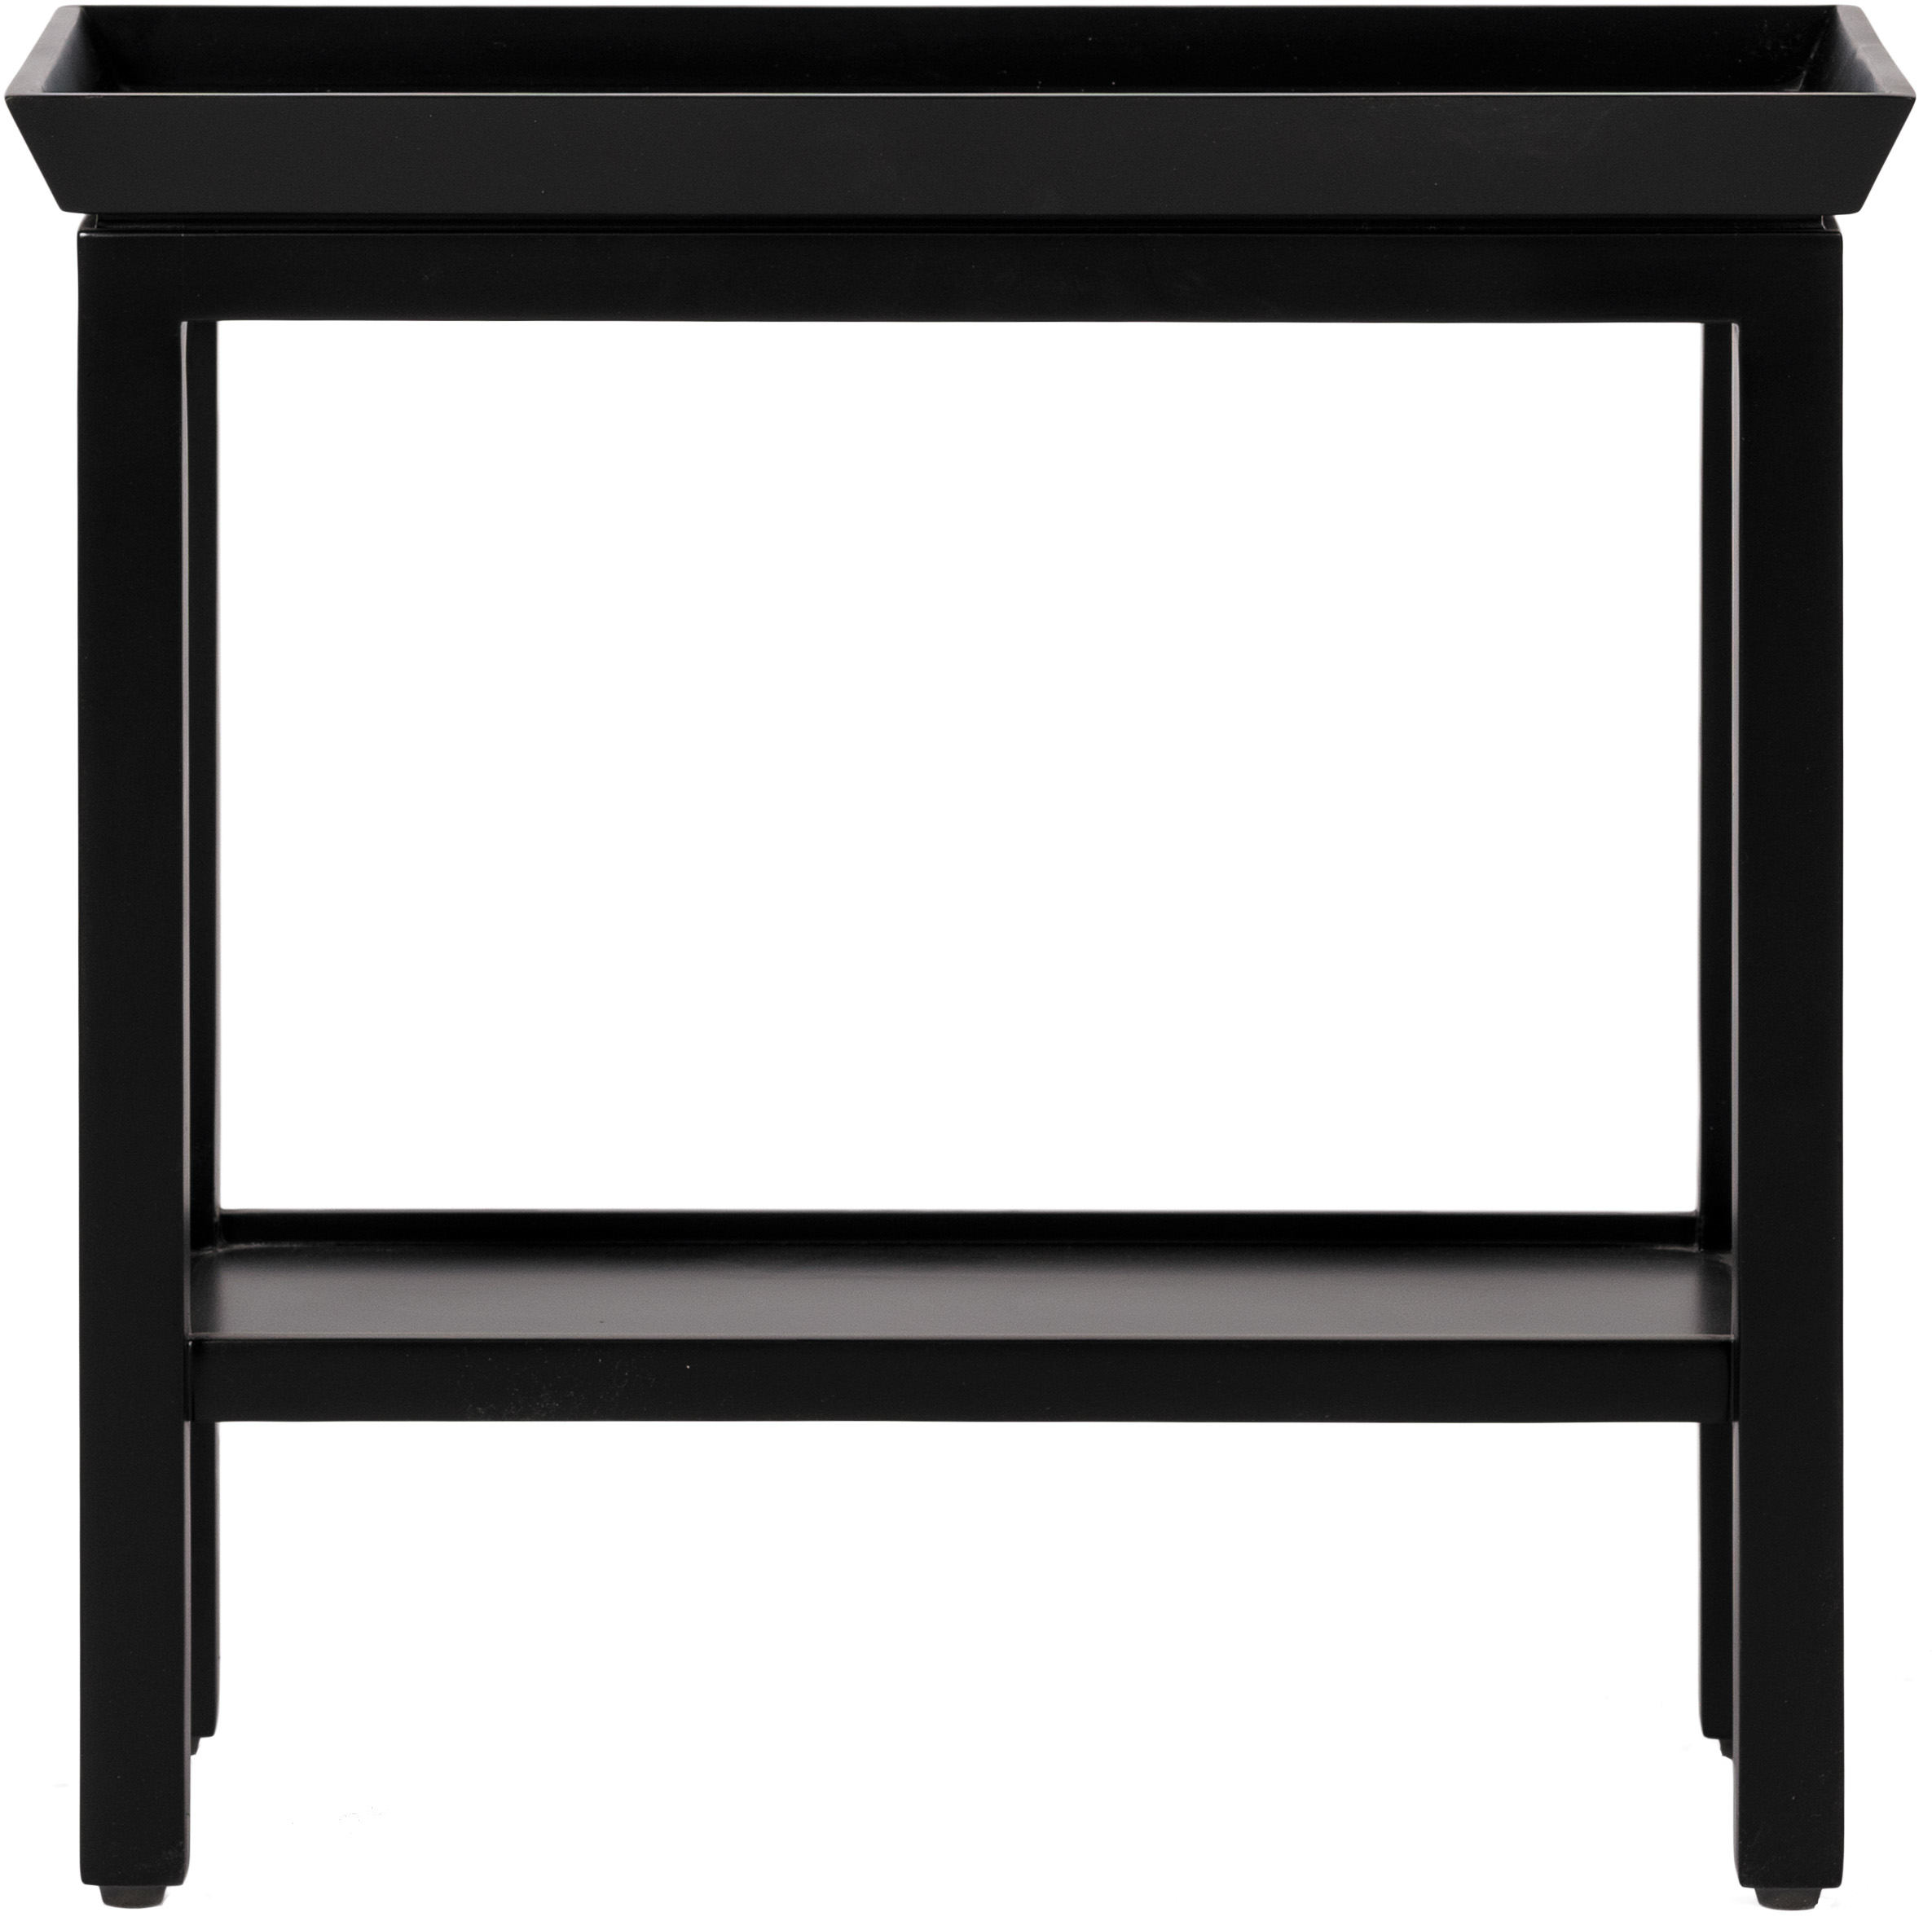 Aldwych Rectangular Side Table, Warm Black